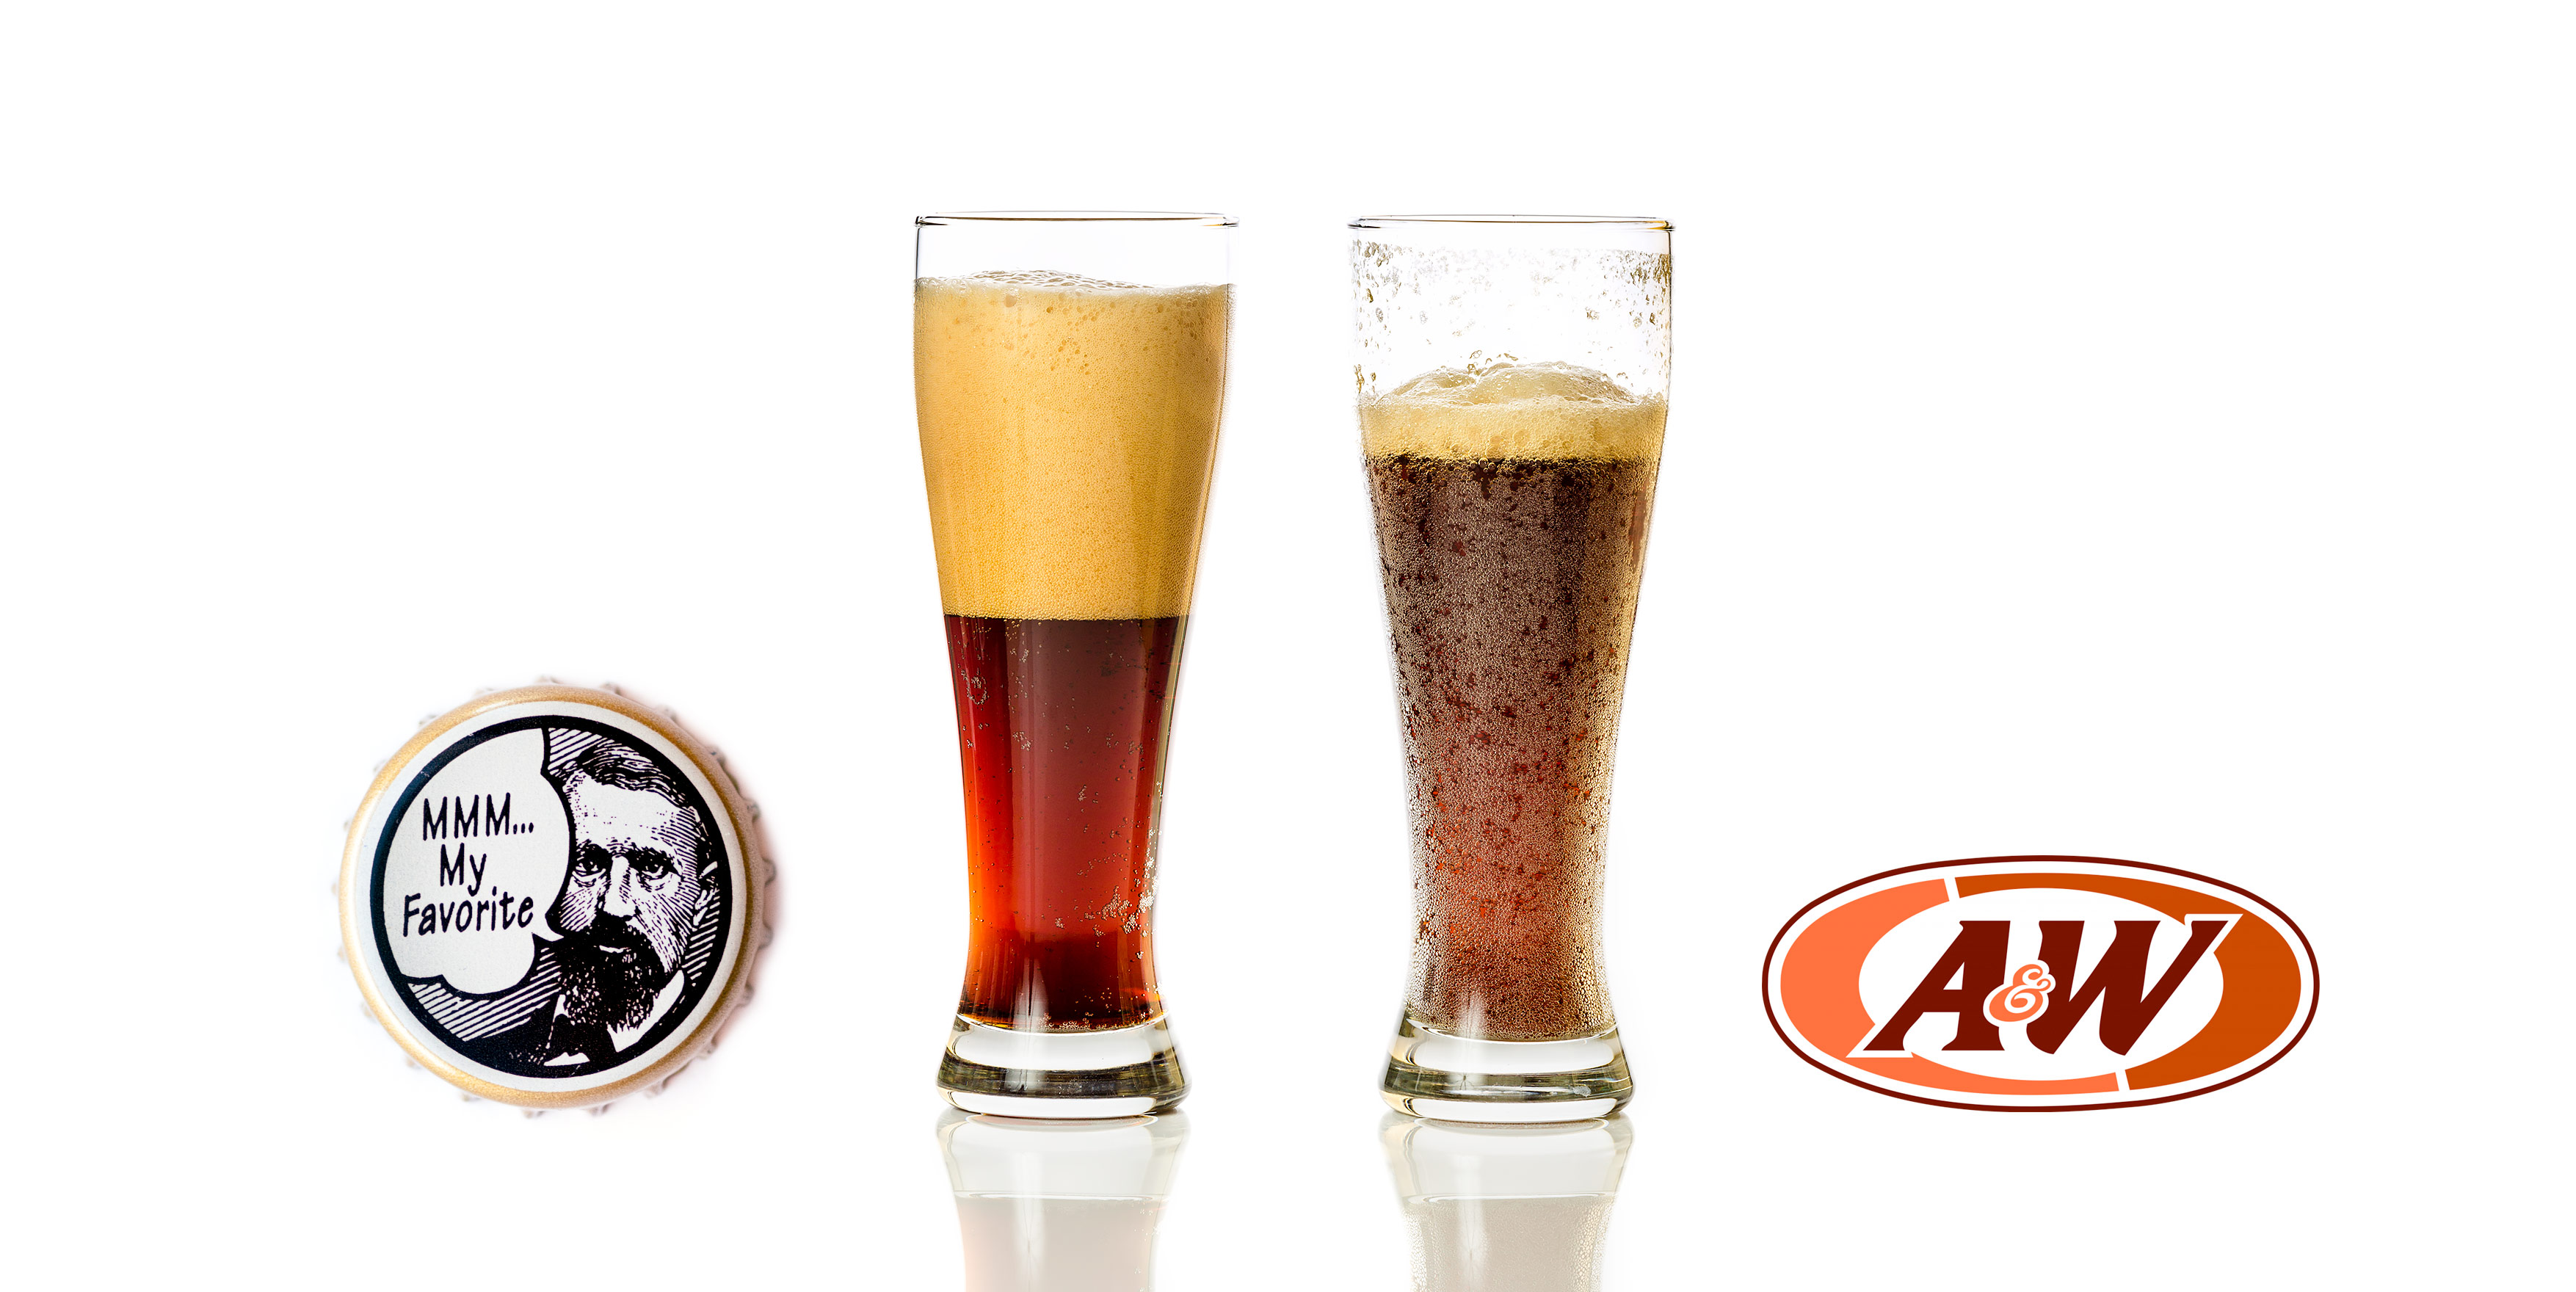 Henry Weinhard's Root Beer compared to A&W Root Beer